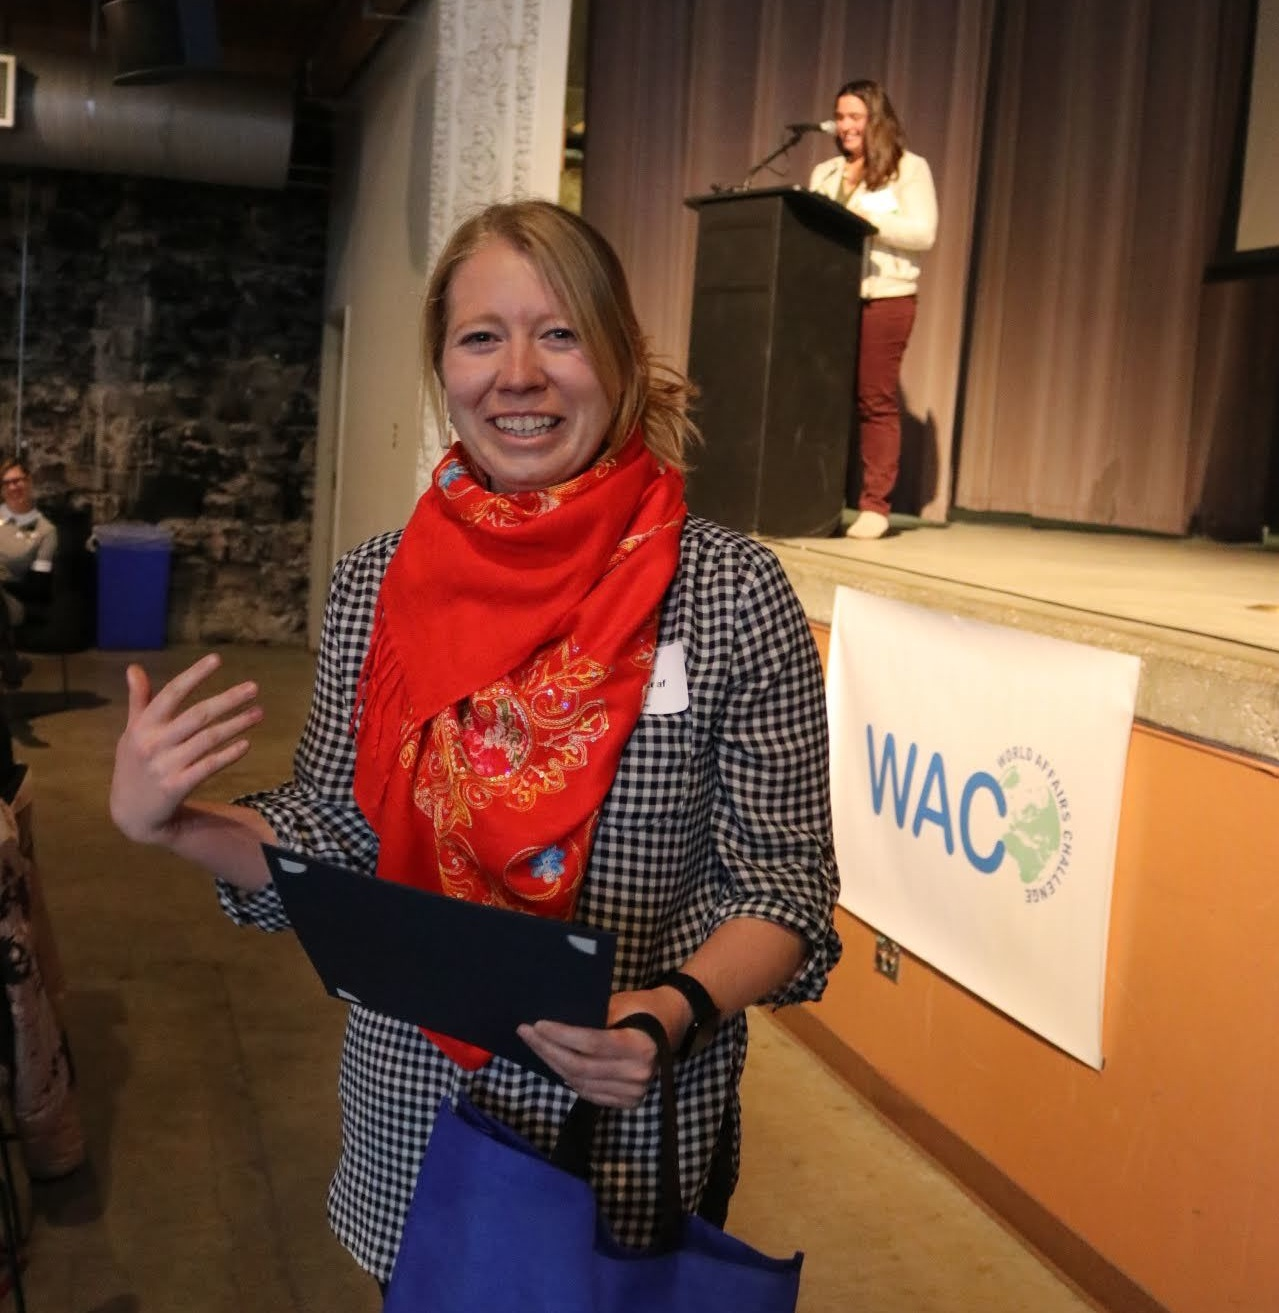 Congratulations to Kate Leaf, middle school teacher from Mackintosh Academy in Boulder for receiving the 2019 World Affairs Challenge Leadership Award for her outstanding work. Kate led two teams: No Shame (cyberbullying) and Mack Justice (racial prejudice and incidences of police brutality).